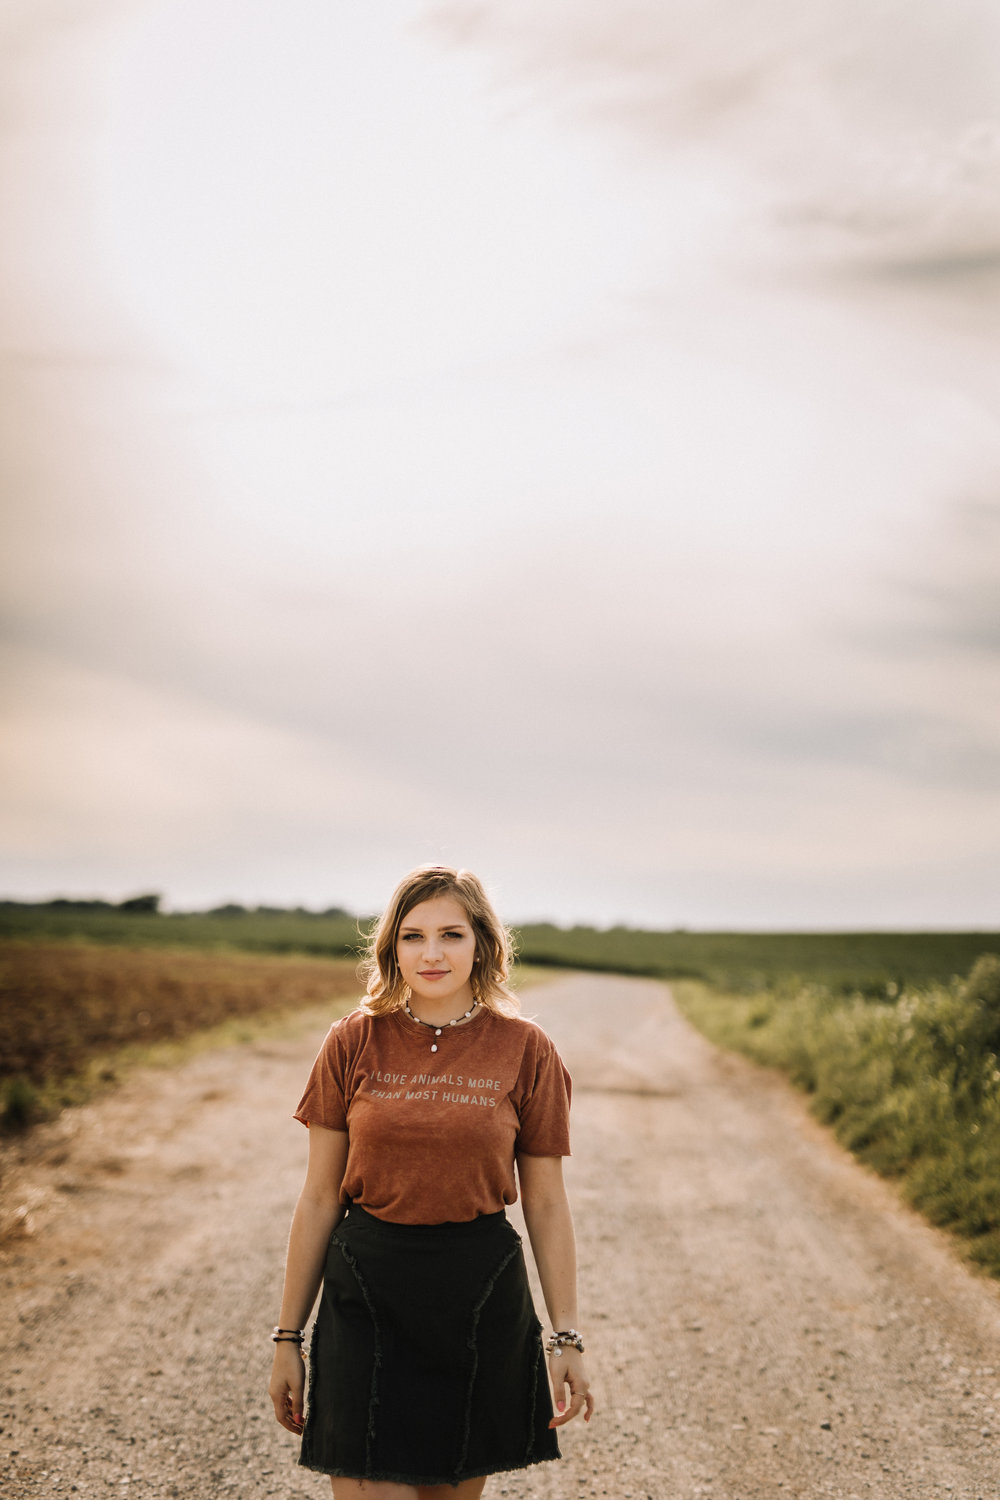 billie-shaye style photography - www.billieshayestyle.com - class of 2019 - senior portrait experience - country farm creek crop land - nashville tennessee-3924.jpg